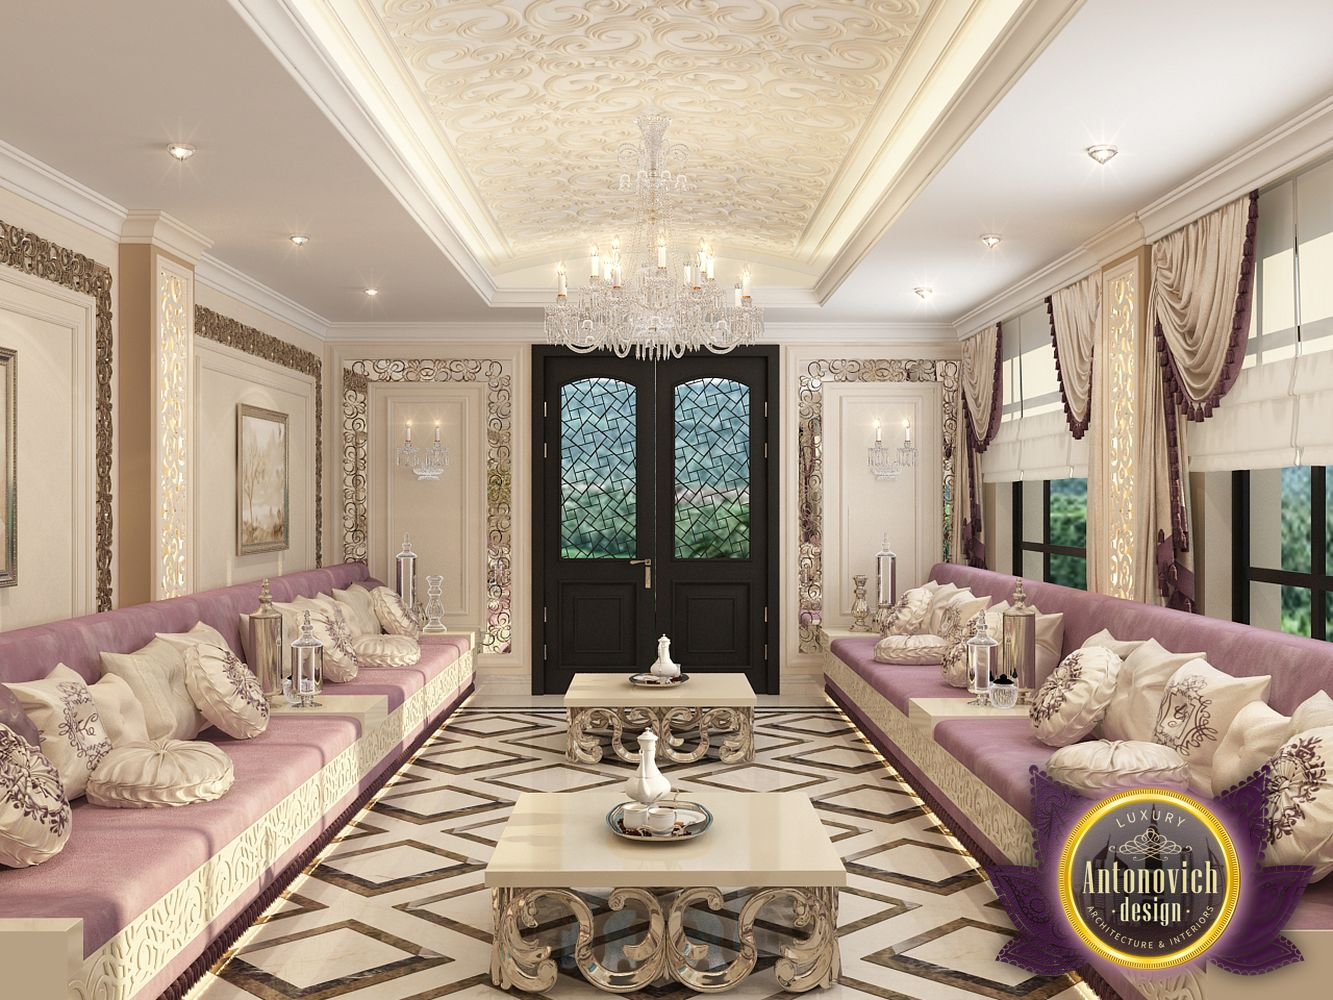 Kenyadesign living room design in kenya of luxury for Living room ideas kenya